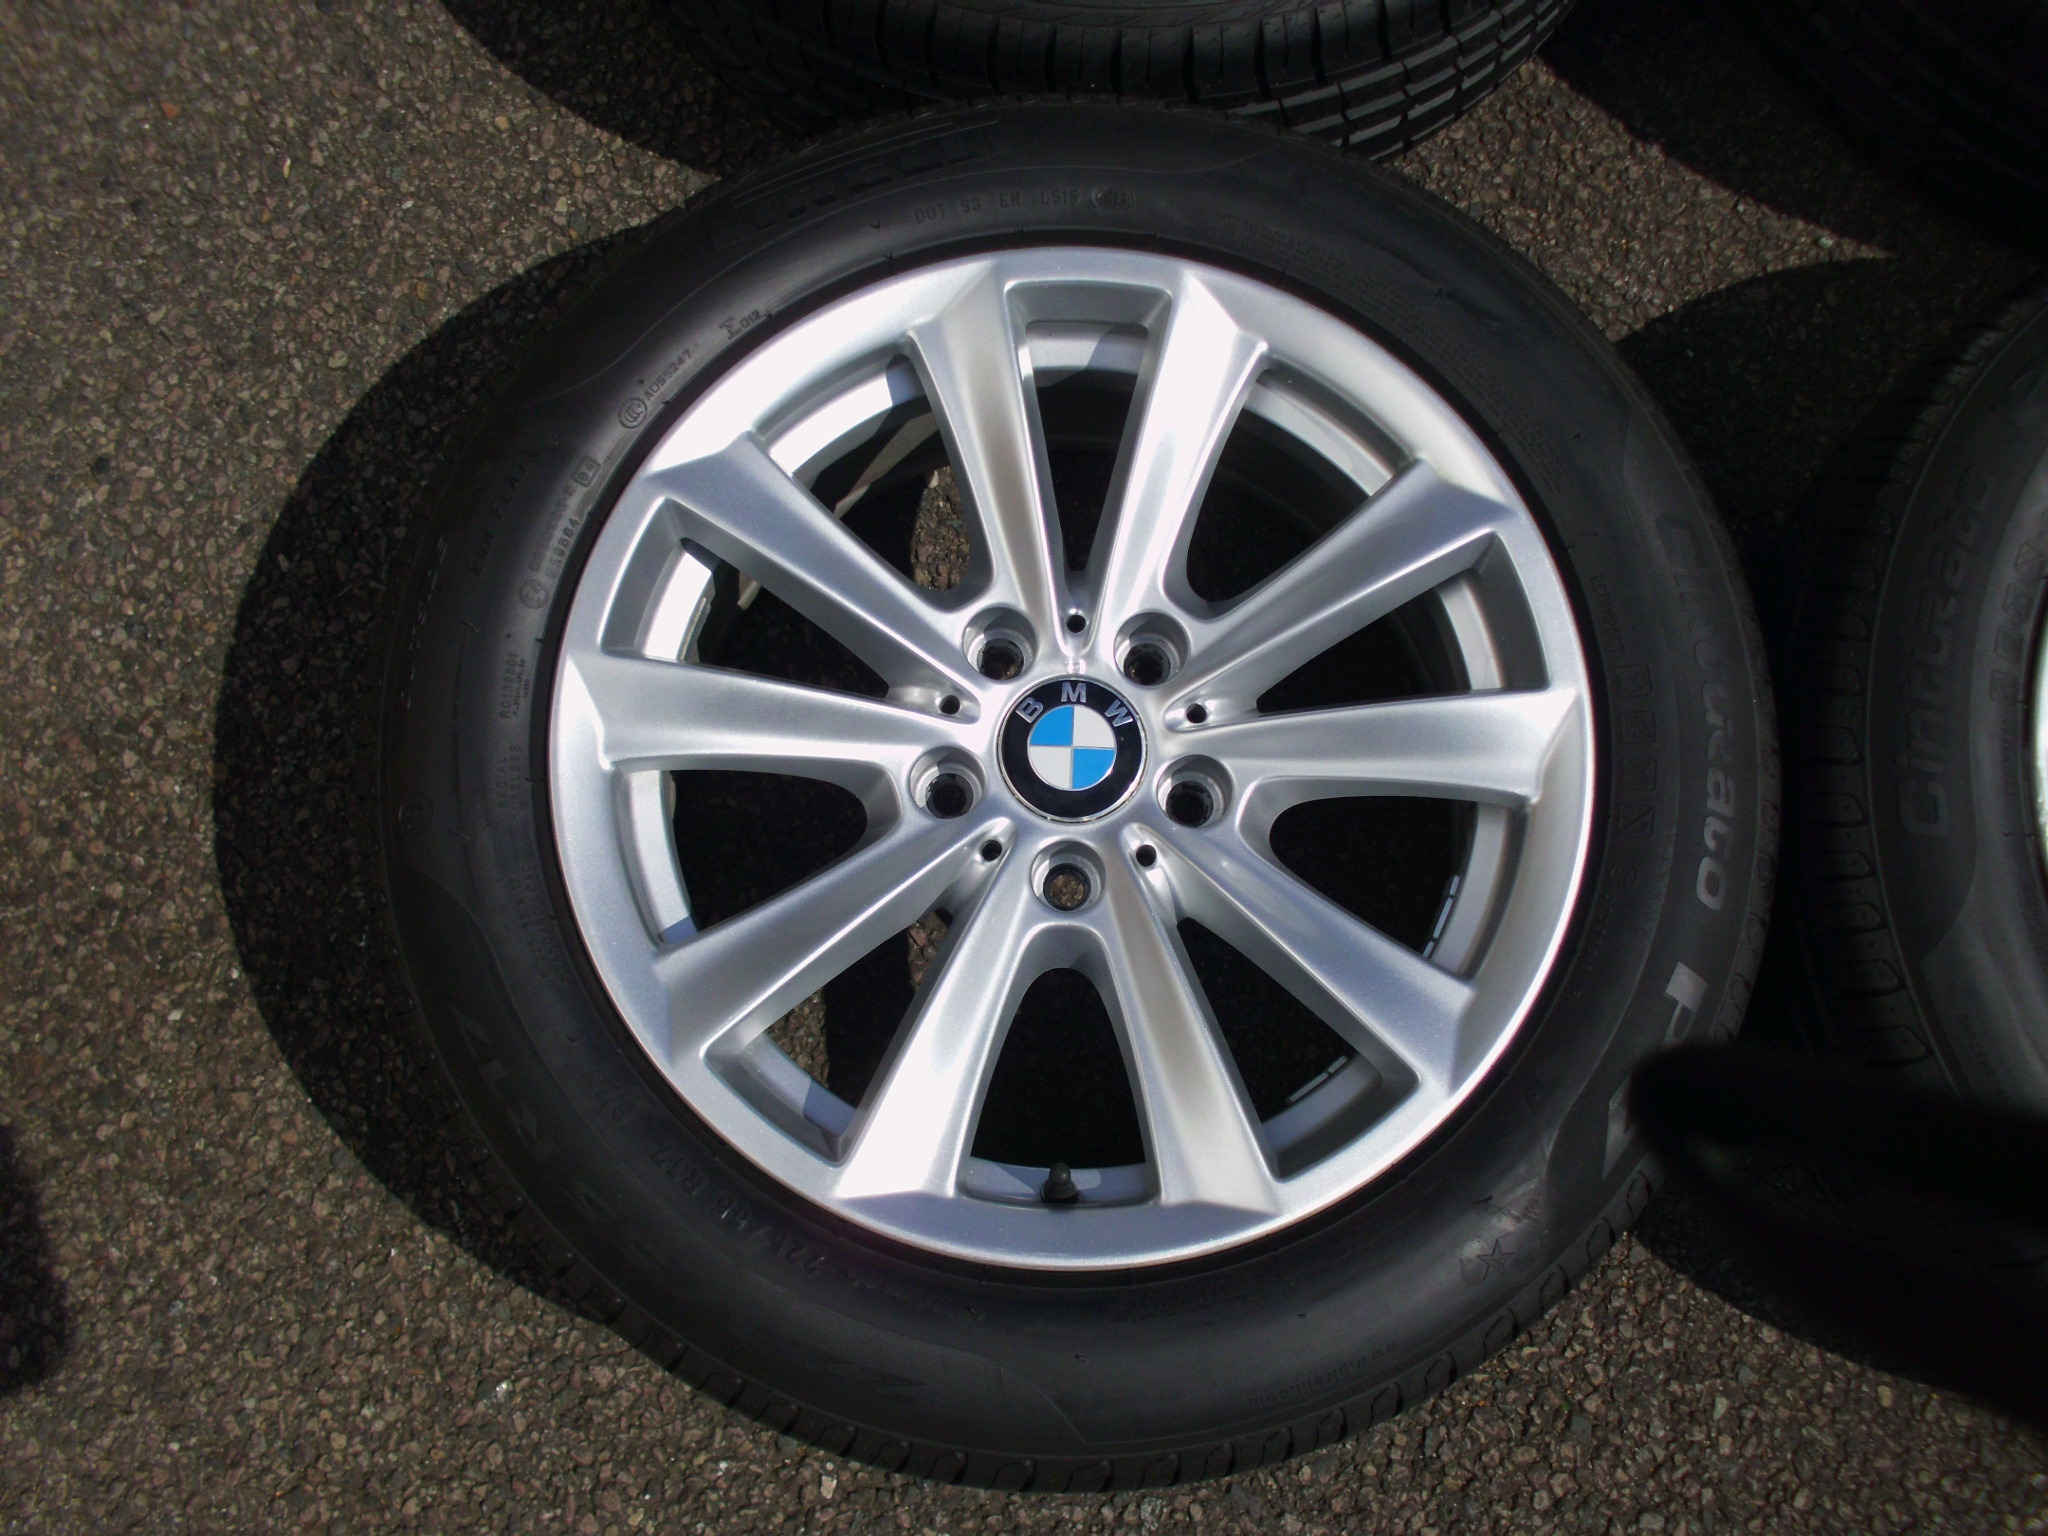 "USED 17"" GENUINE STYLE 236 F10/11 V SPOKE ALLOY WHEELS, VGC INC GOOD RUNFLATS TYRES"